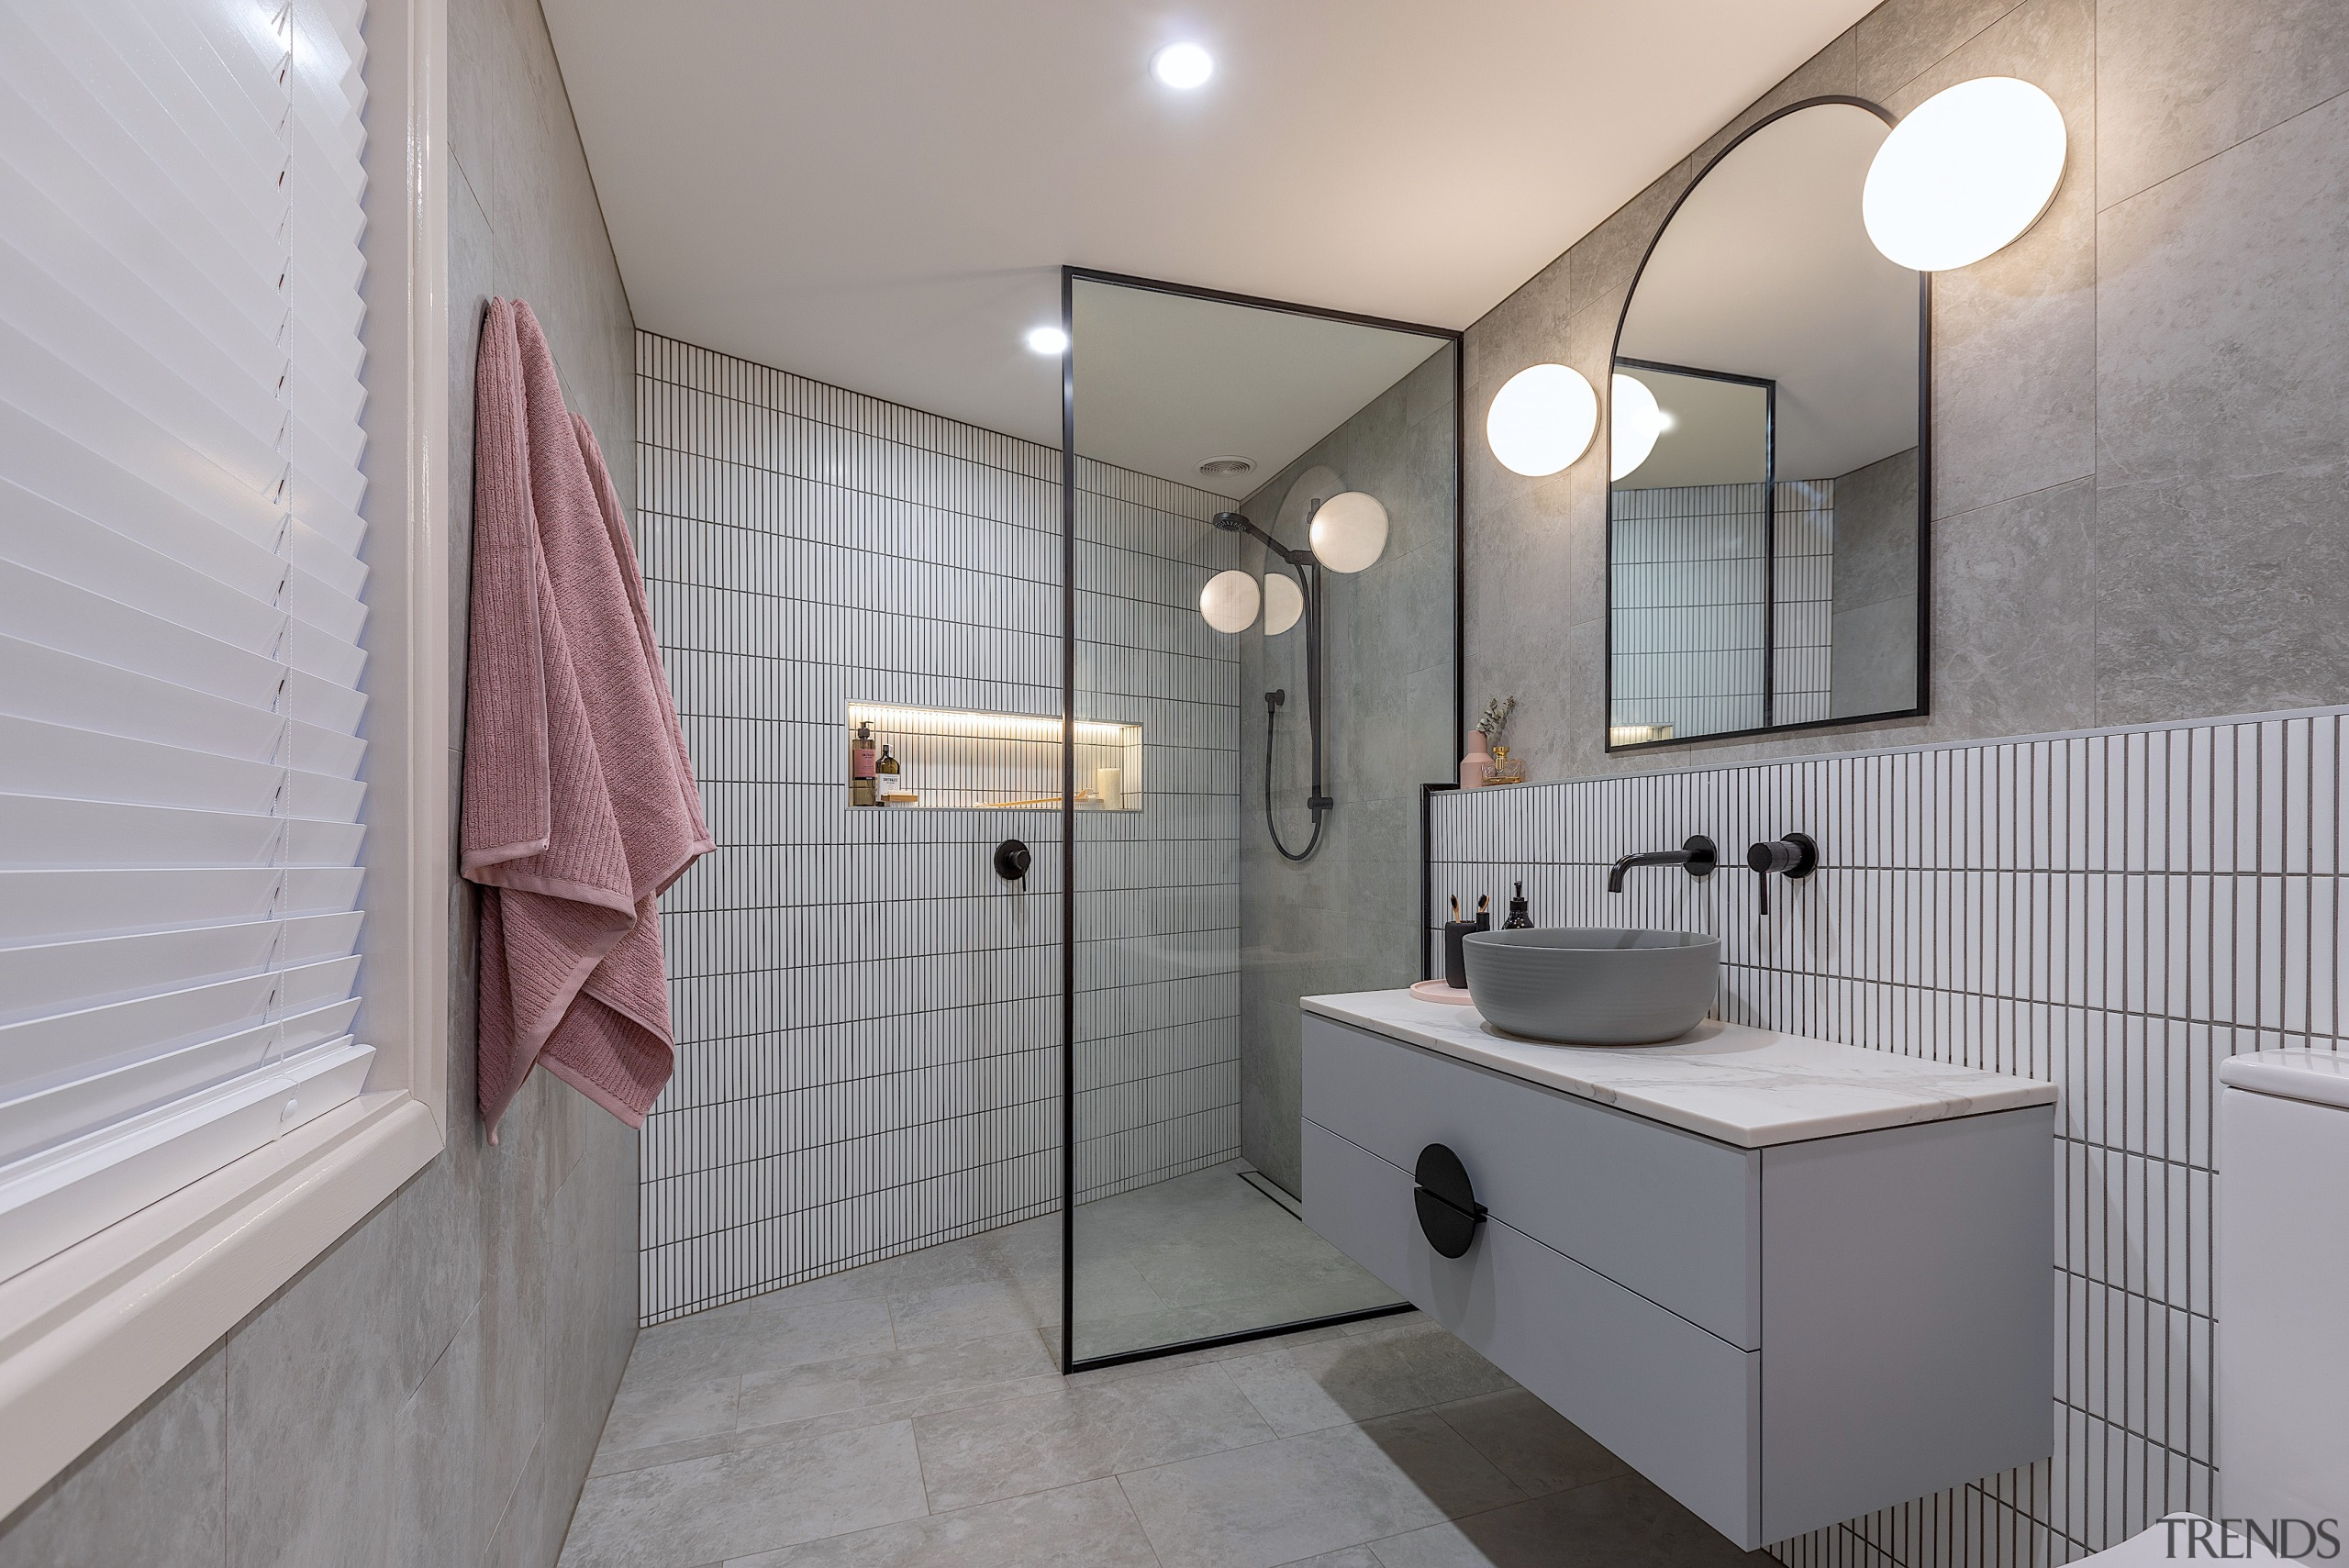 This stylish bathroom ticks all the on-trend boxes